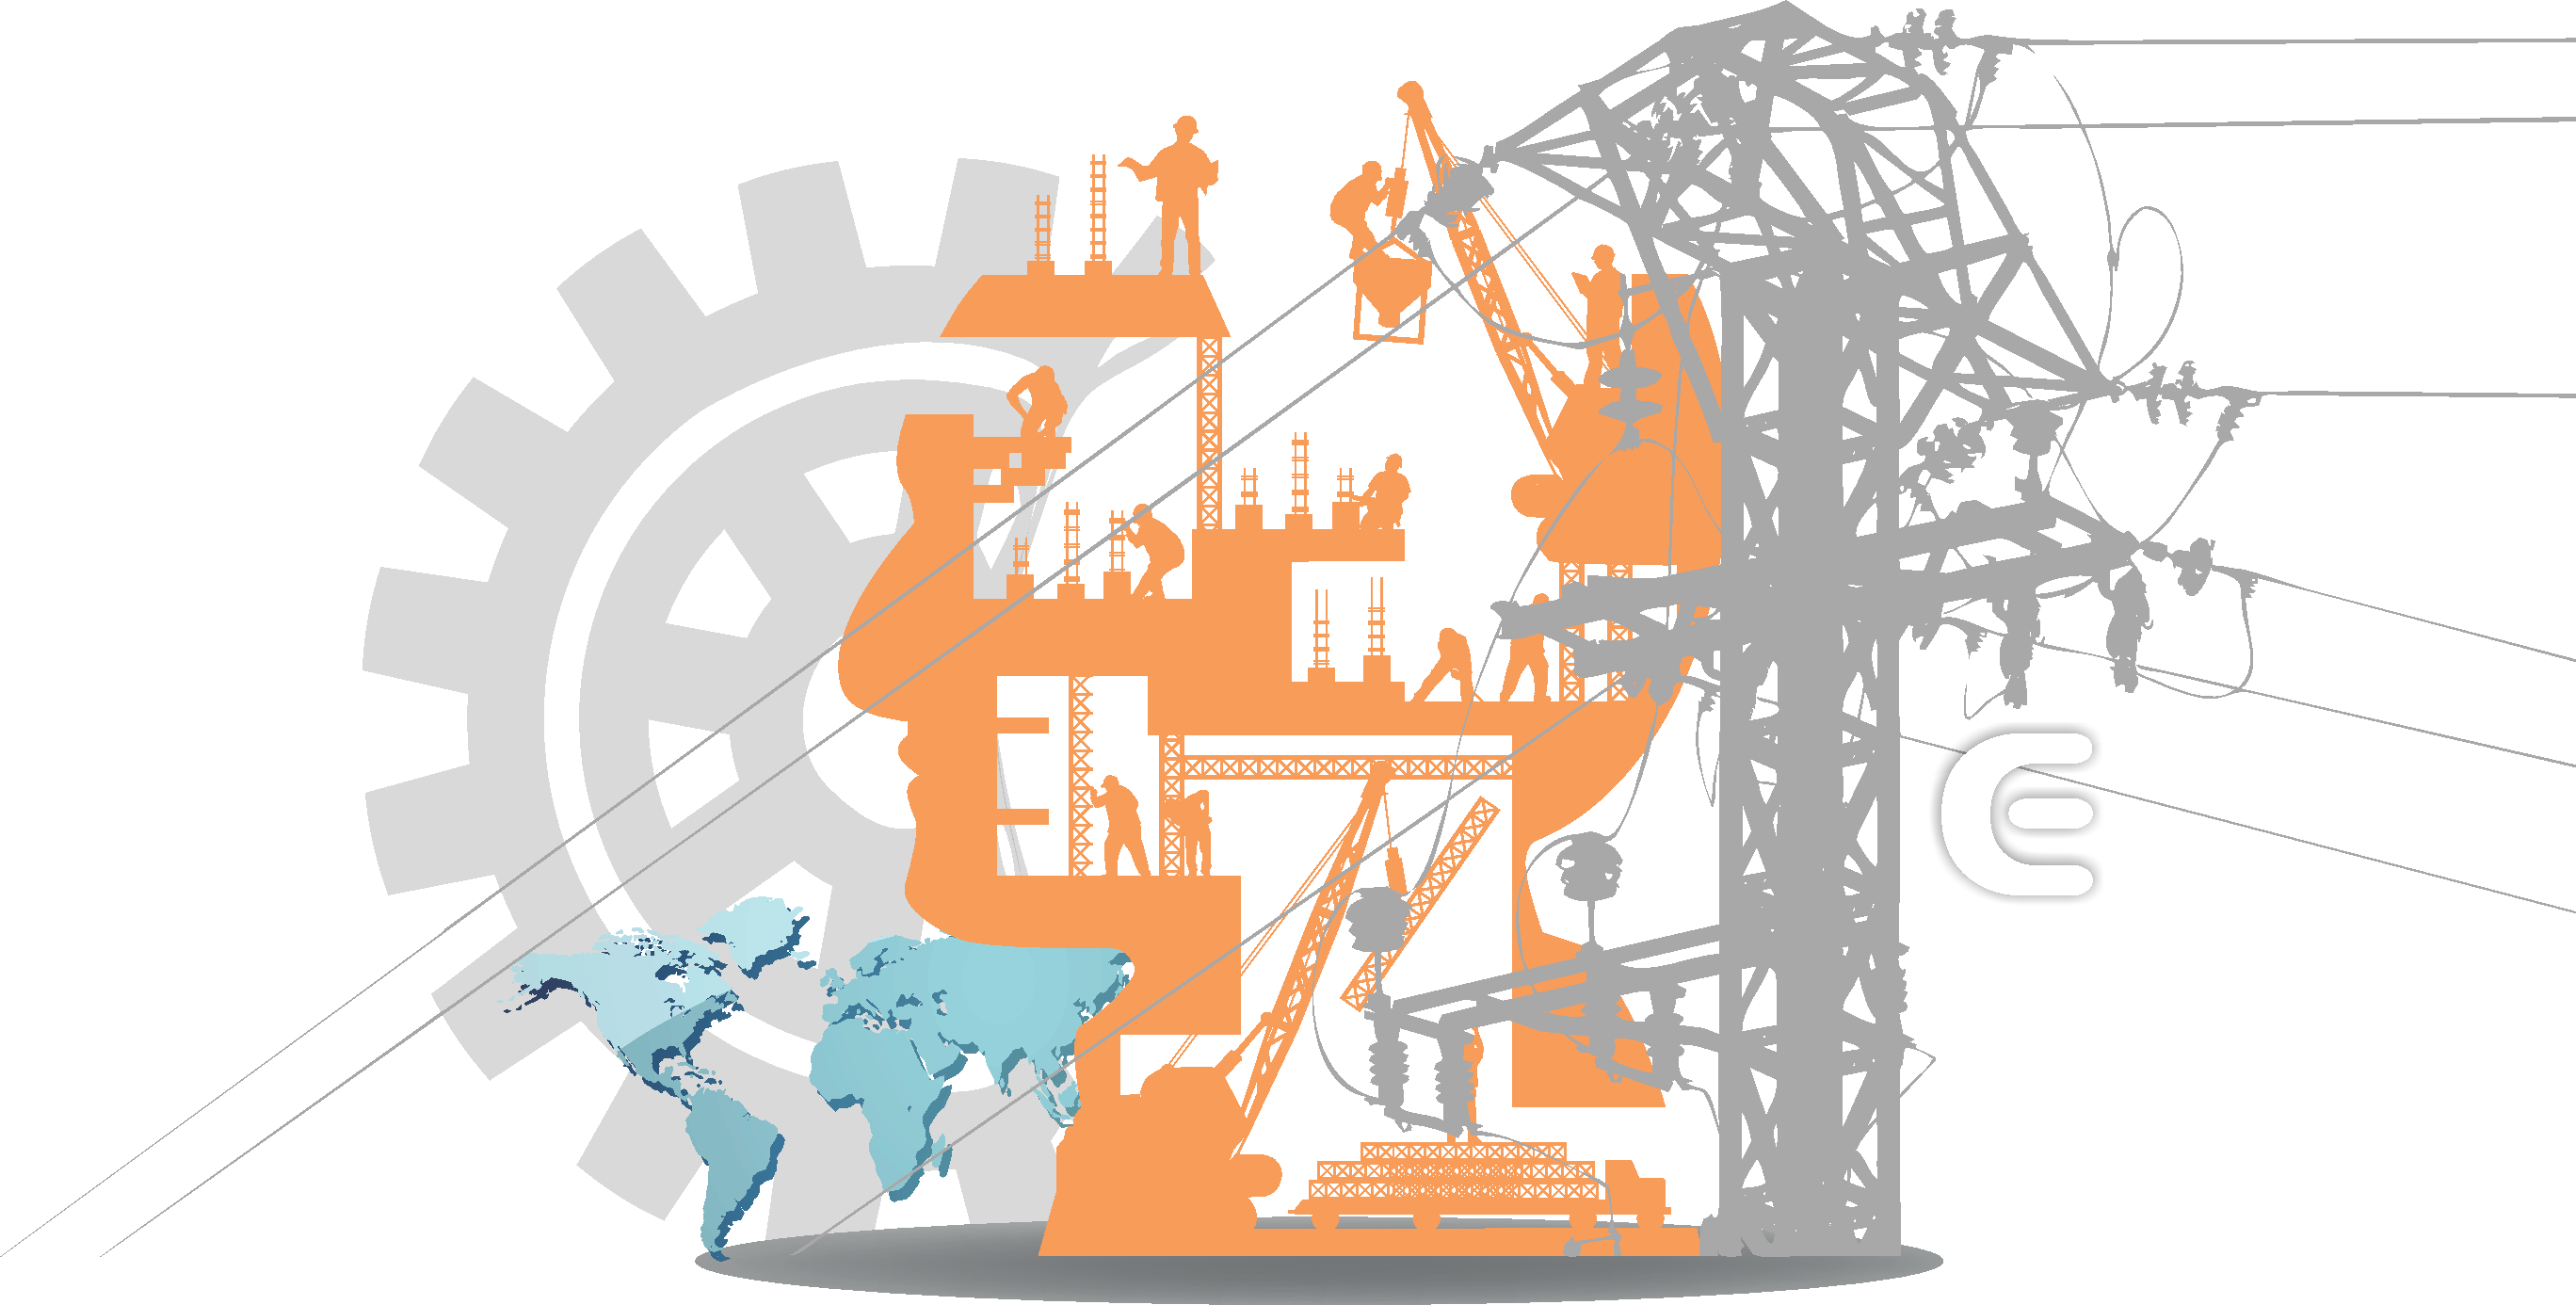 Electric power systems co. Engineer clipart electricity